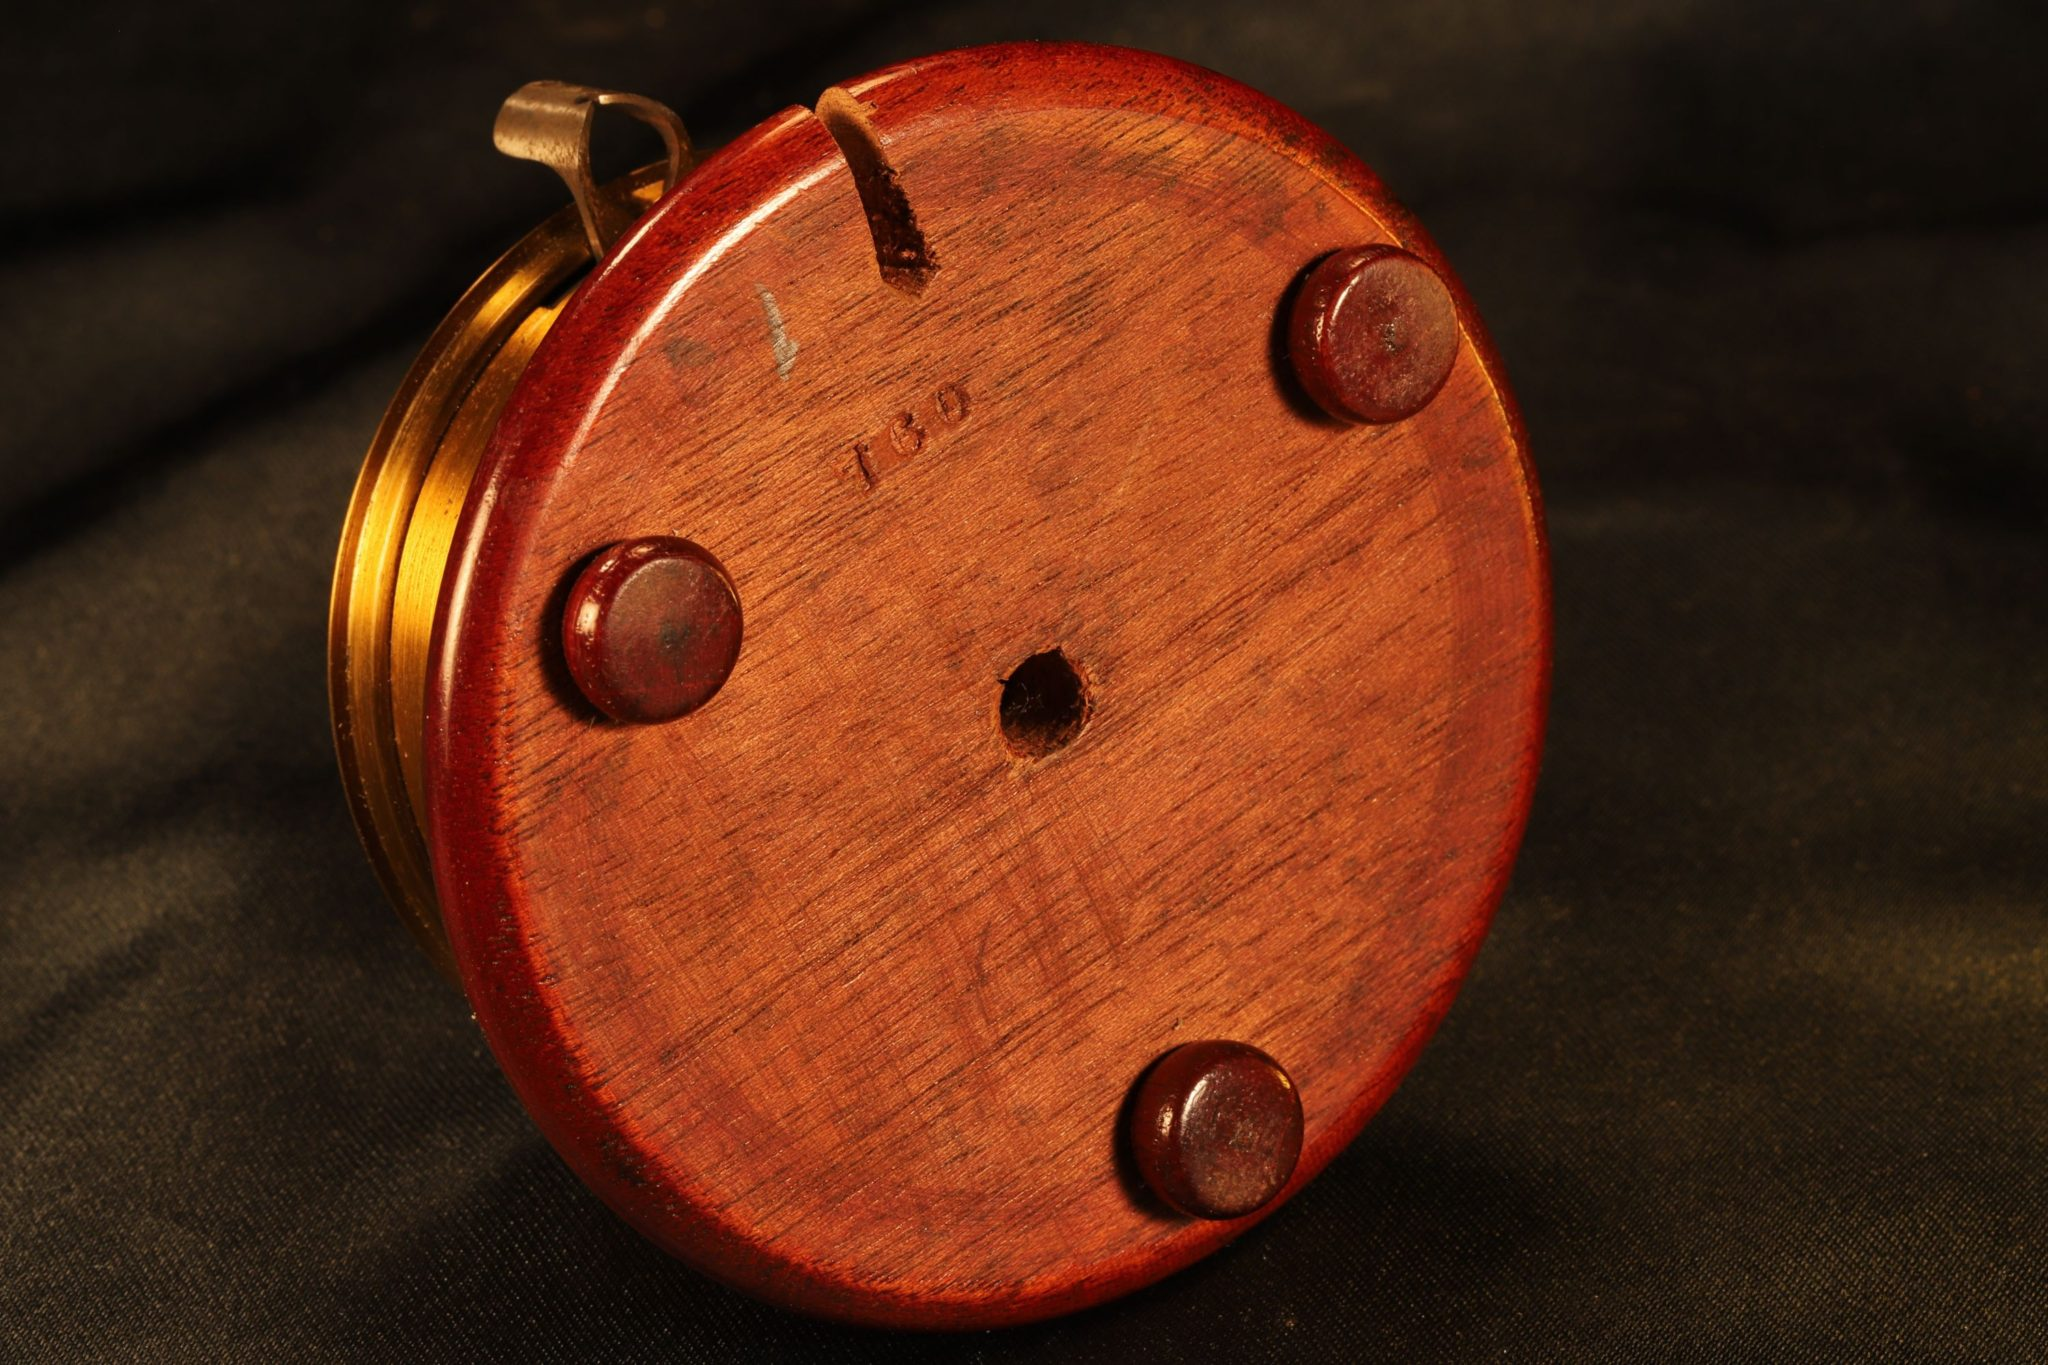 Image of Swiss Watchmakers Micrometer Dial Gauge c1890